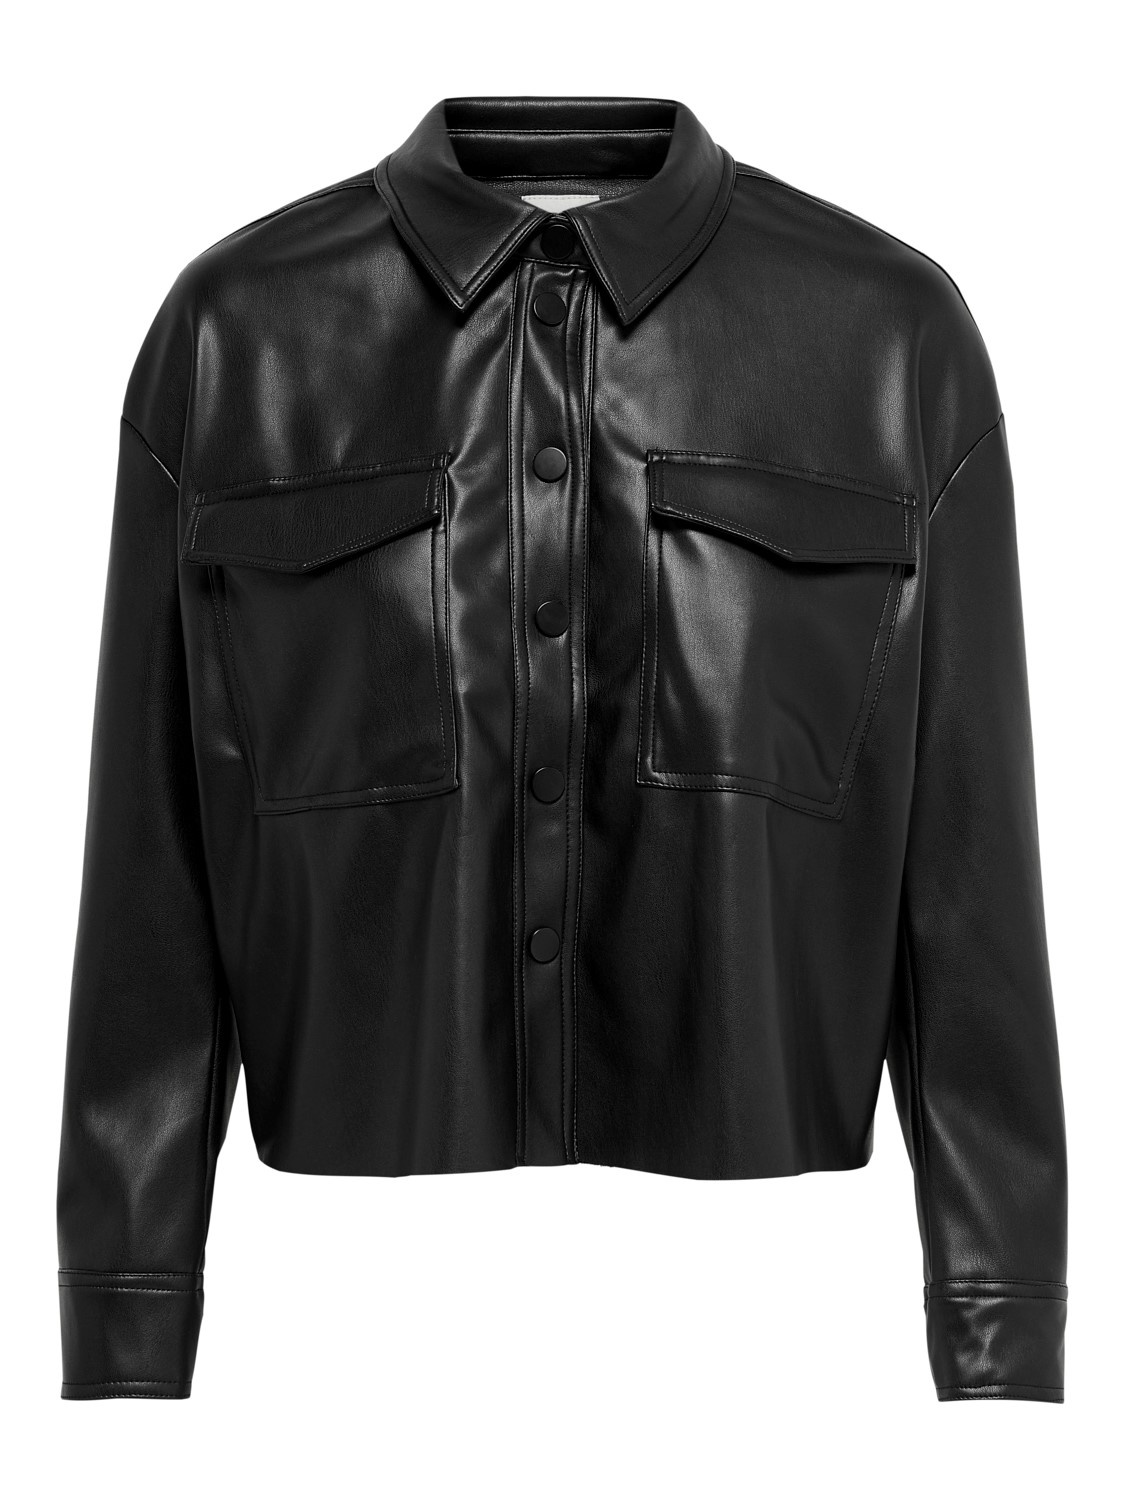 PEPITES only veste marina faux leather-1